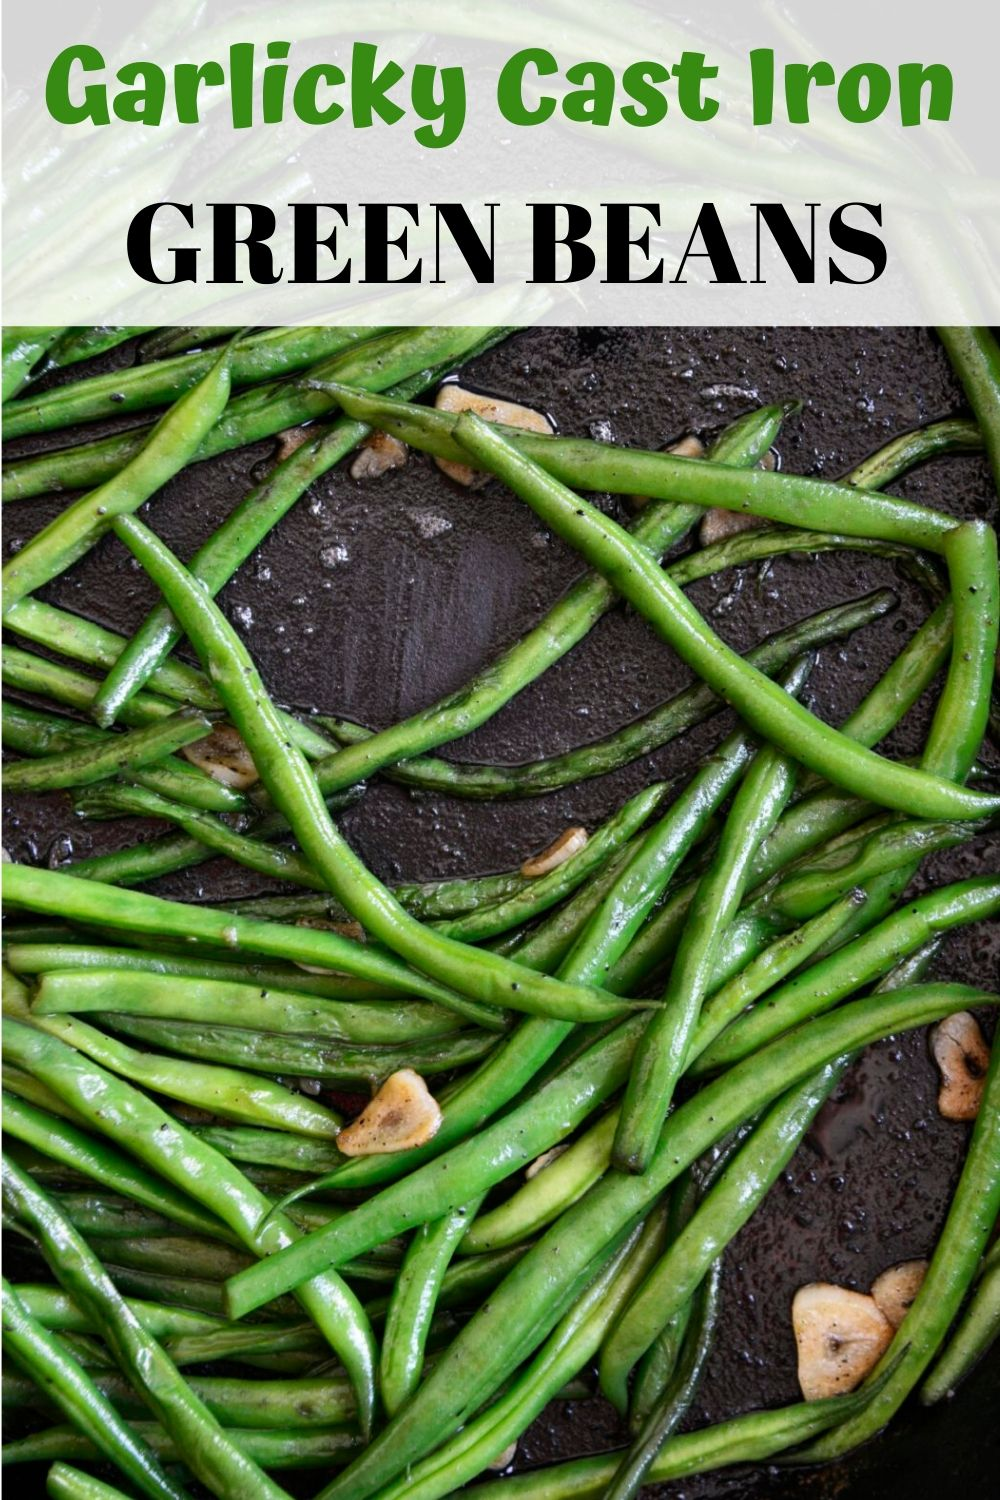 Garlicky Cast Iron Green Beans is a delicious spin on fresh green beans. This low carb side pairs nicely with any entree & is done is less than 25 minutes!